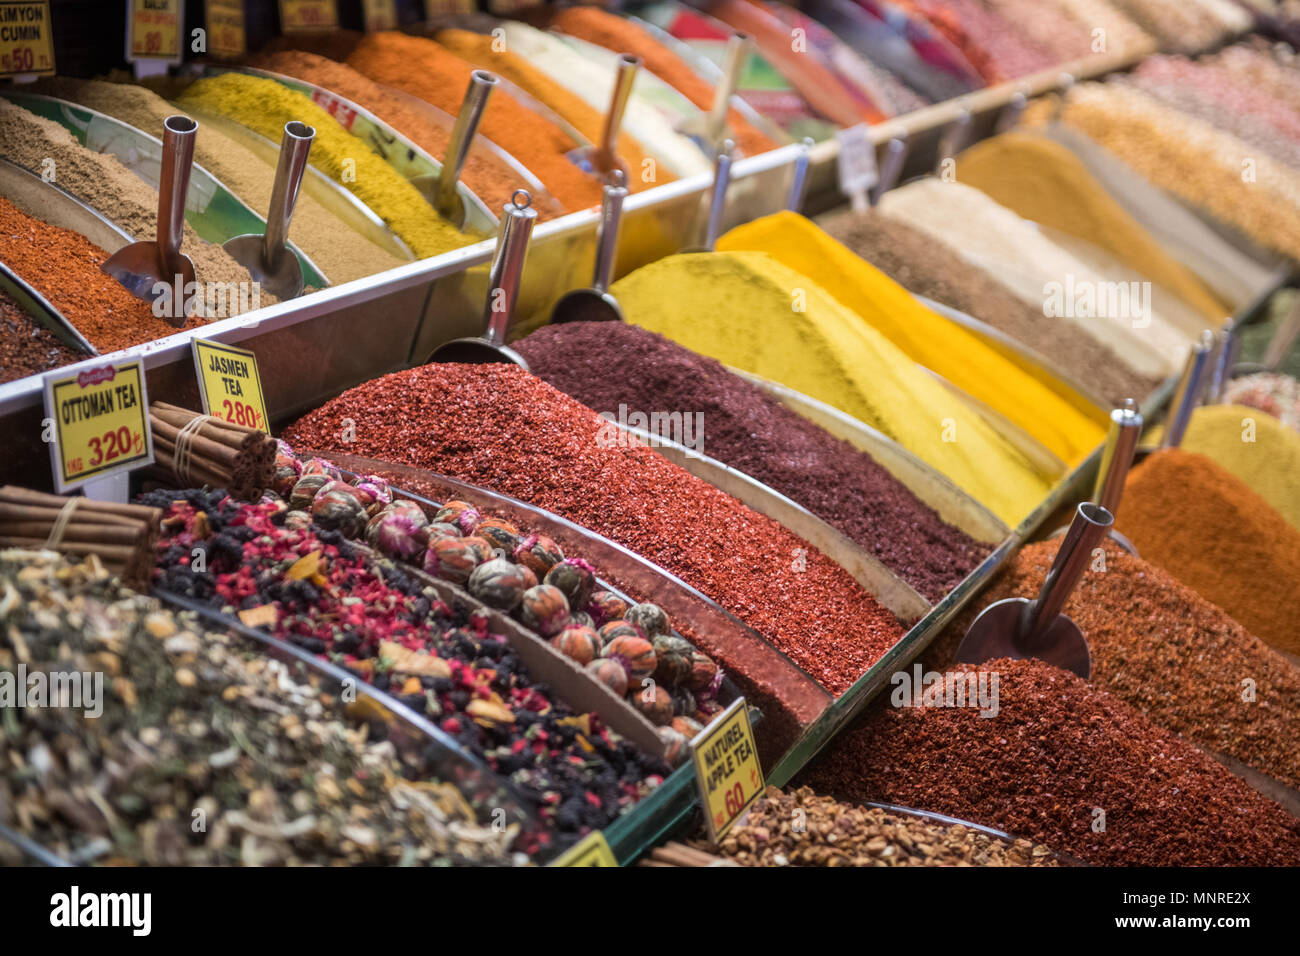 Serve-yourself style bins full of a colorful array of spices and loose teas on display for sale at Istanbul Spice bazaar in Turkey - Stock Image